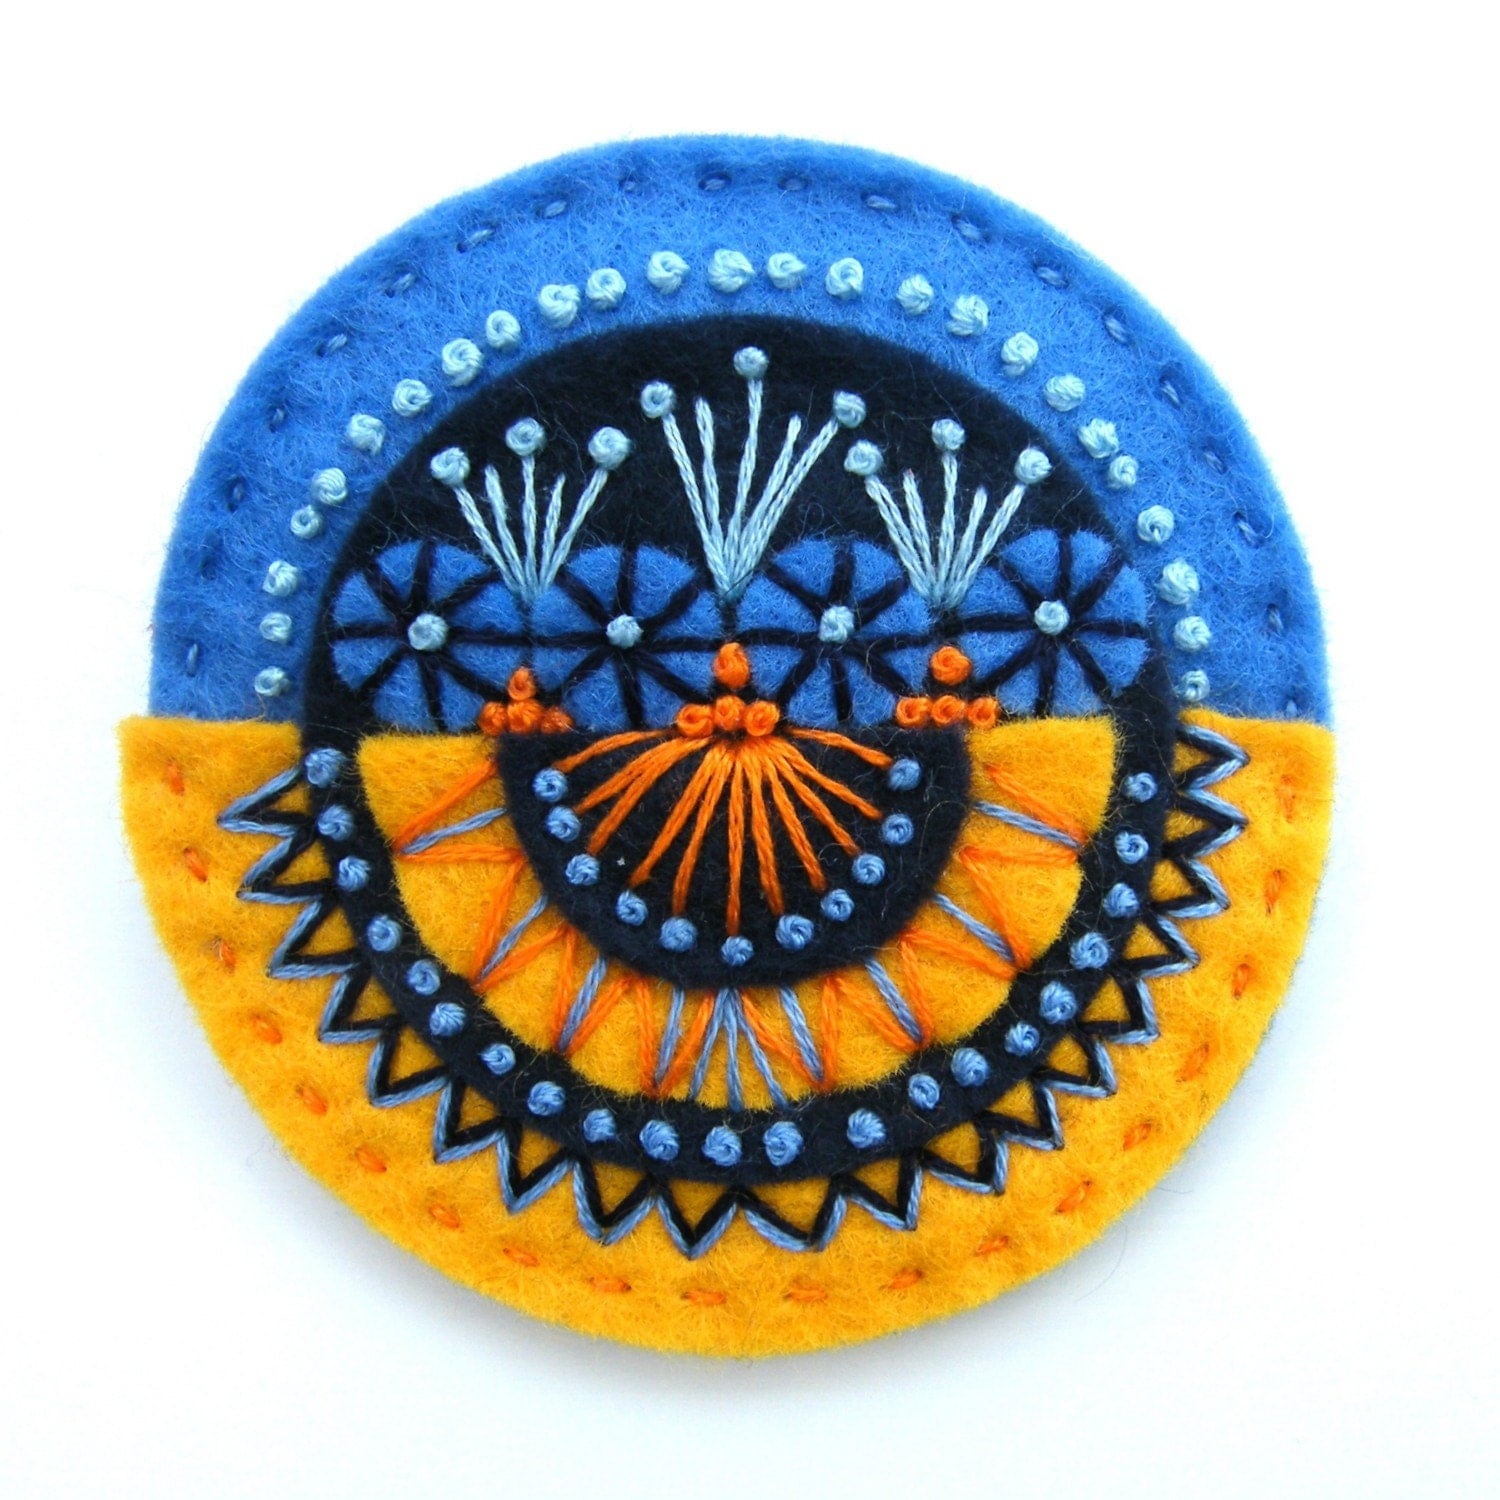 AZTEC FELT BROOCH WITH FREEFORM EMBROIDERY